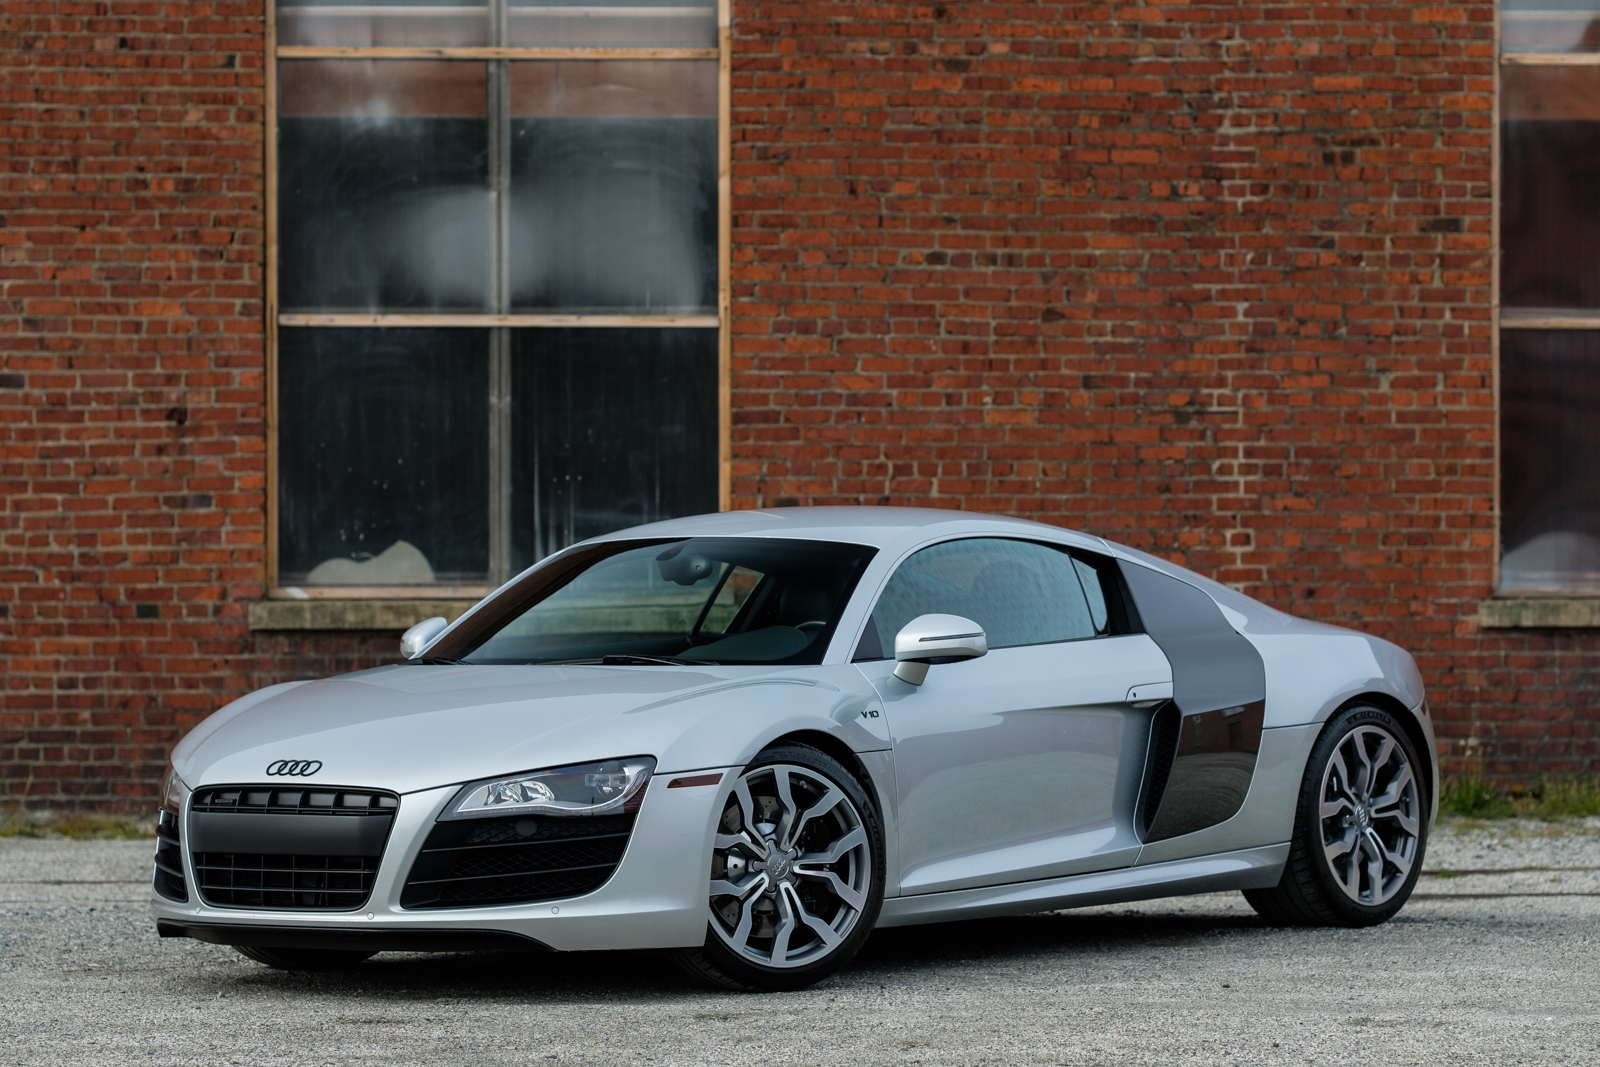 2010 Audi R8 V10 Coupe Silver Arrow Cars Ltd